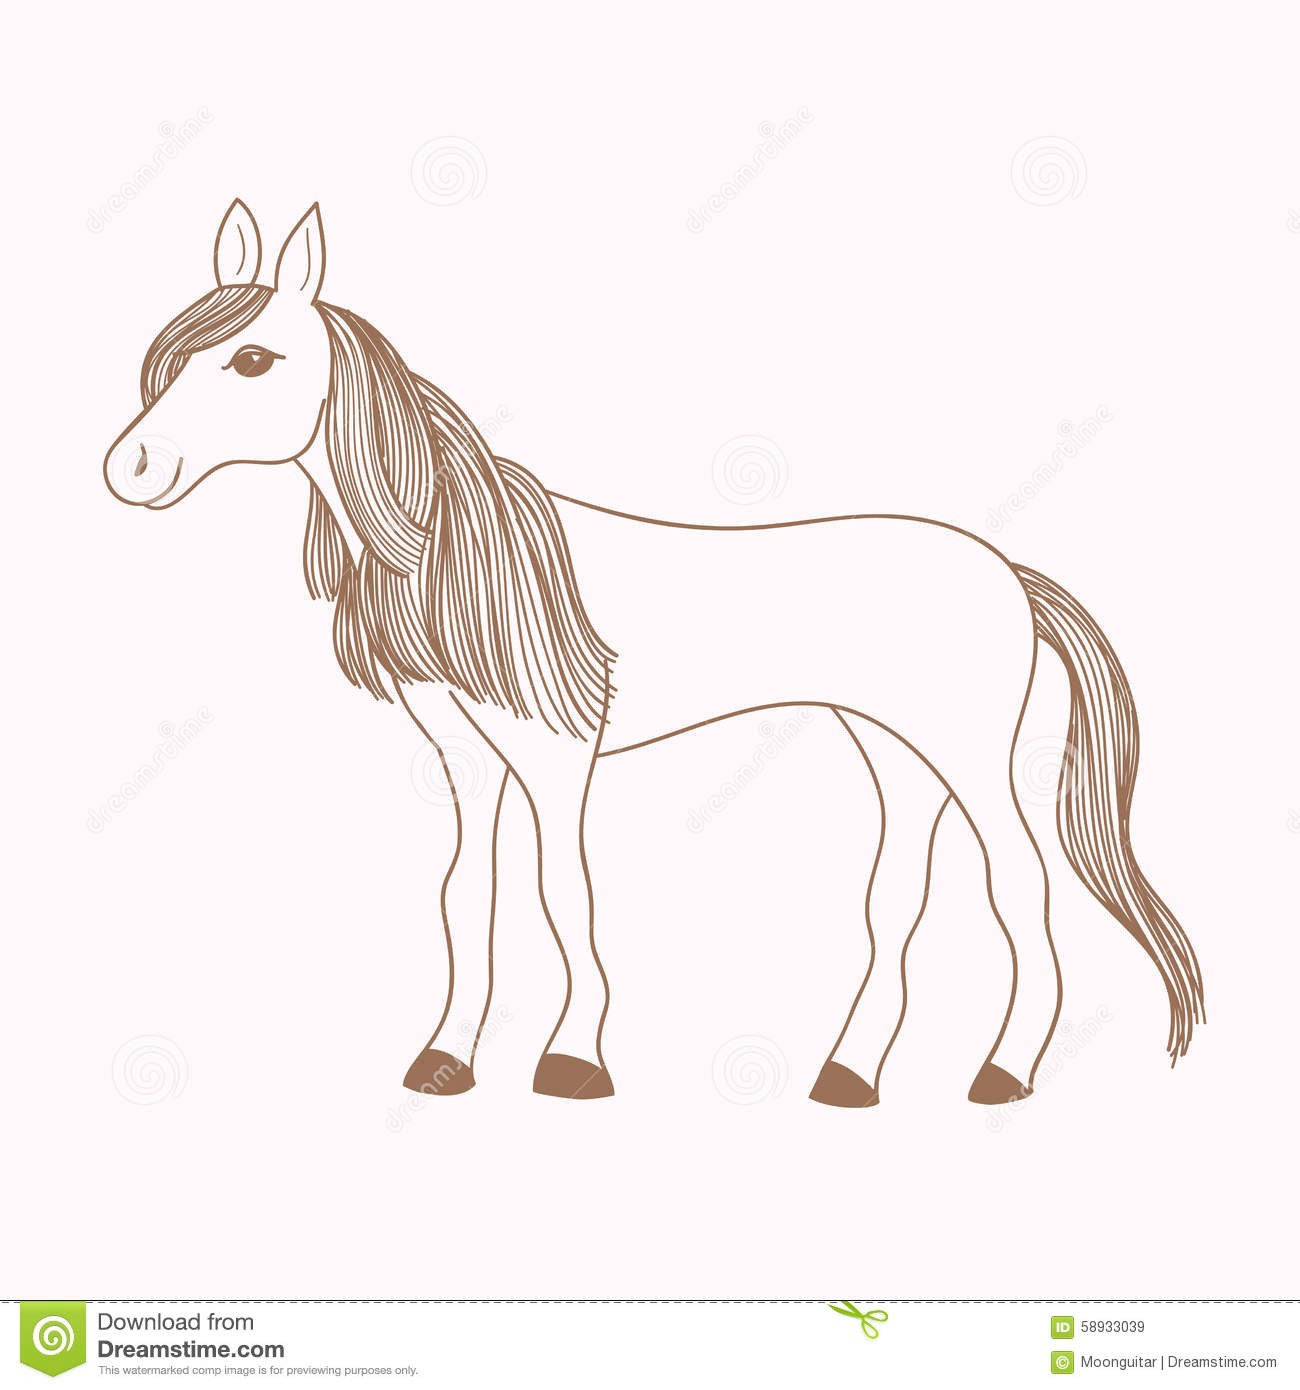 Stock Illustration Cute Hand Drawn Horse Drawing Mare Long Mane Tail Vector Illustration Image58933039 on mustang drawings